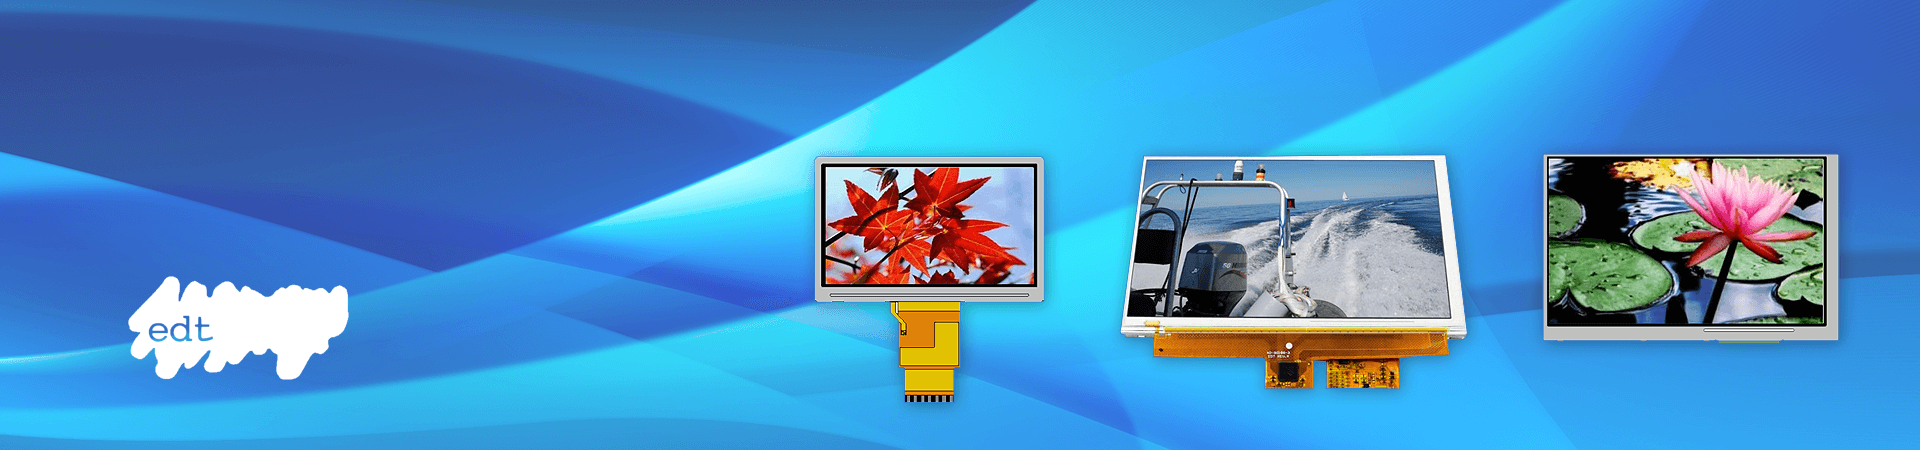 TFT LCDs, STN LCDs, and Smart Embedded Modules by EDT